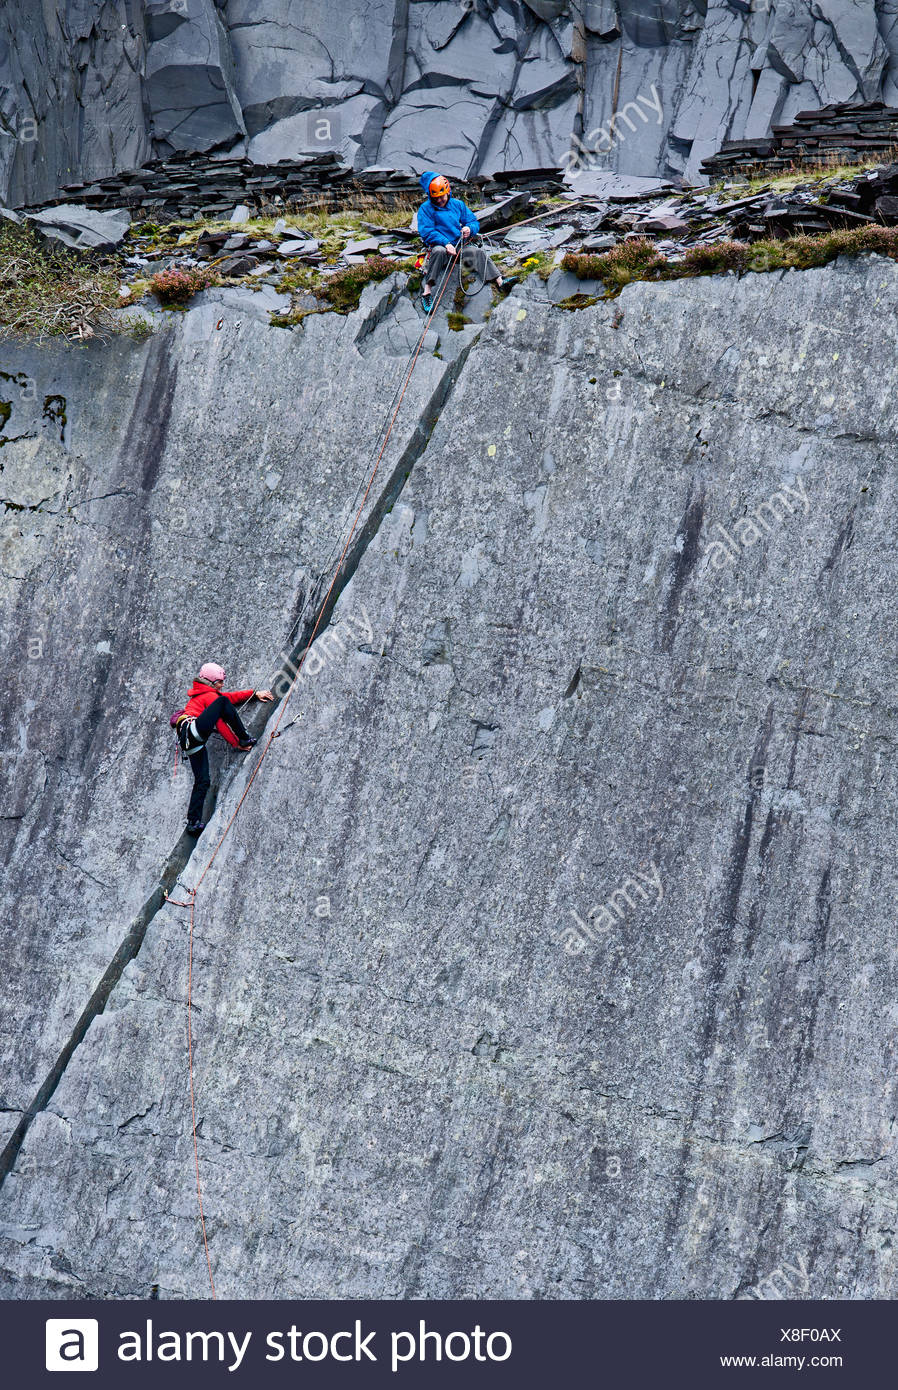 Les grimpeurs scaling steep rock face Photo Stock